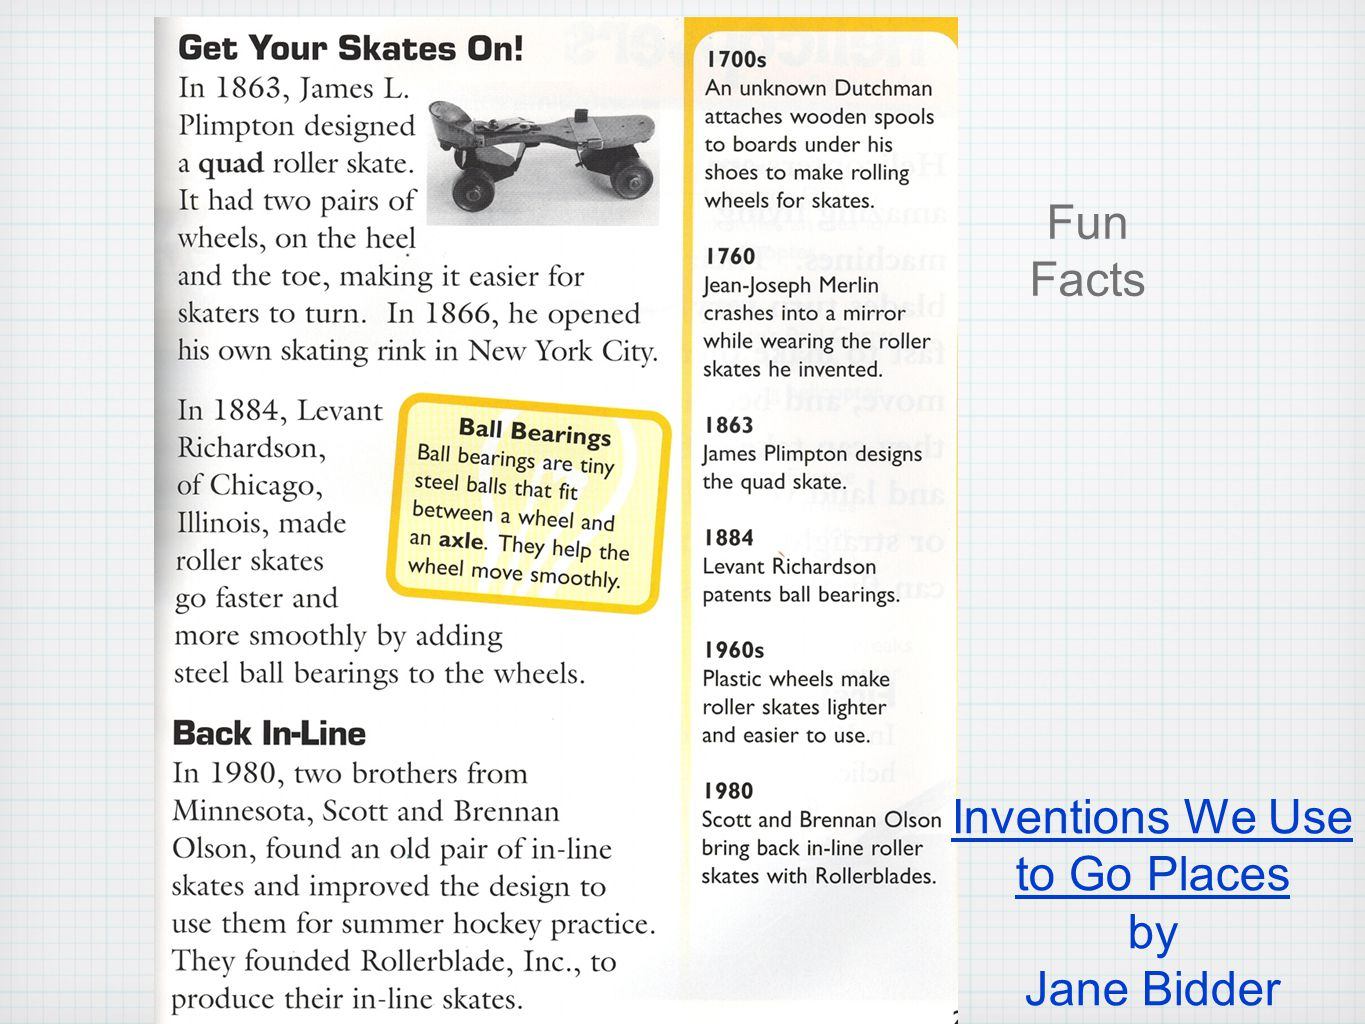 Fun Facts Inventions We Use to Go Places by Jane Bidder